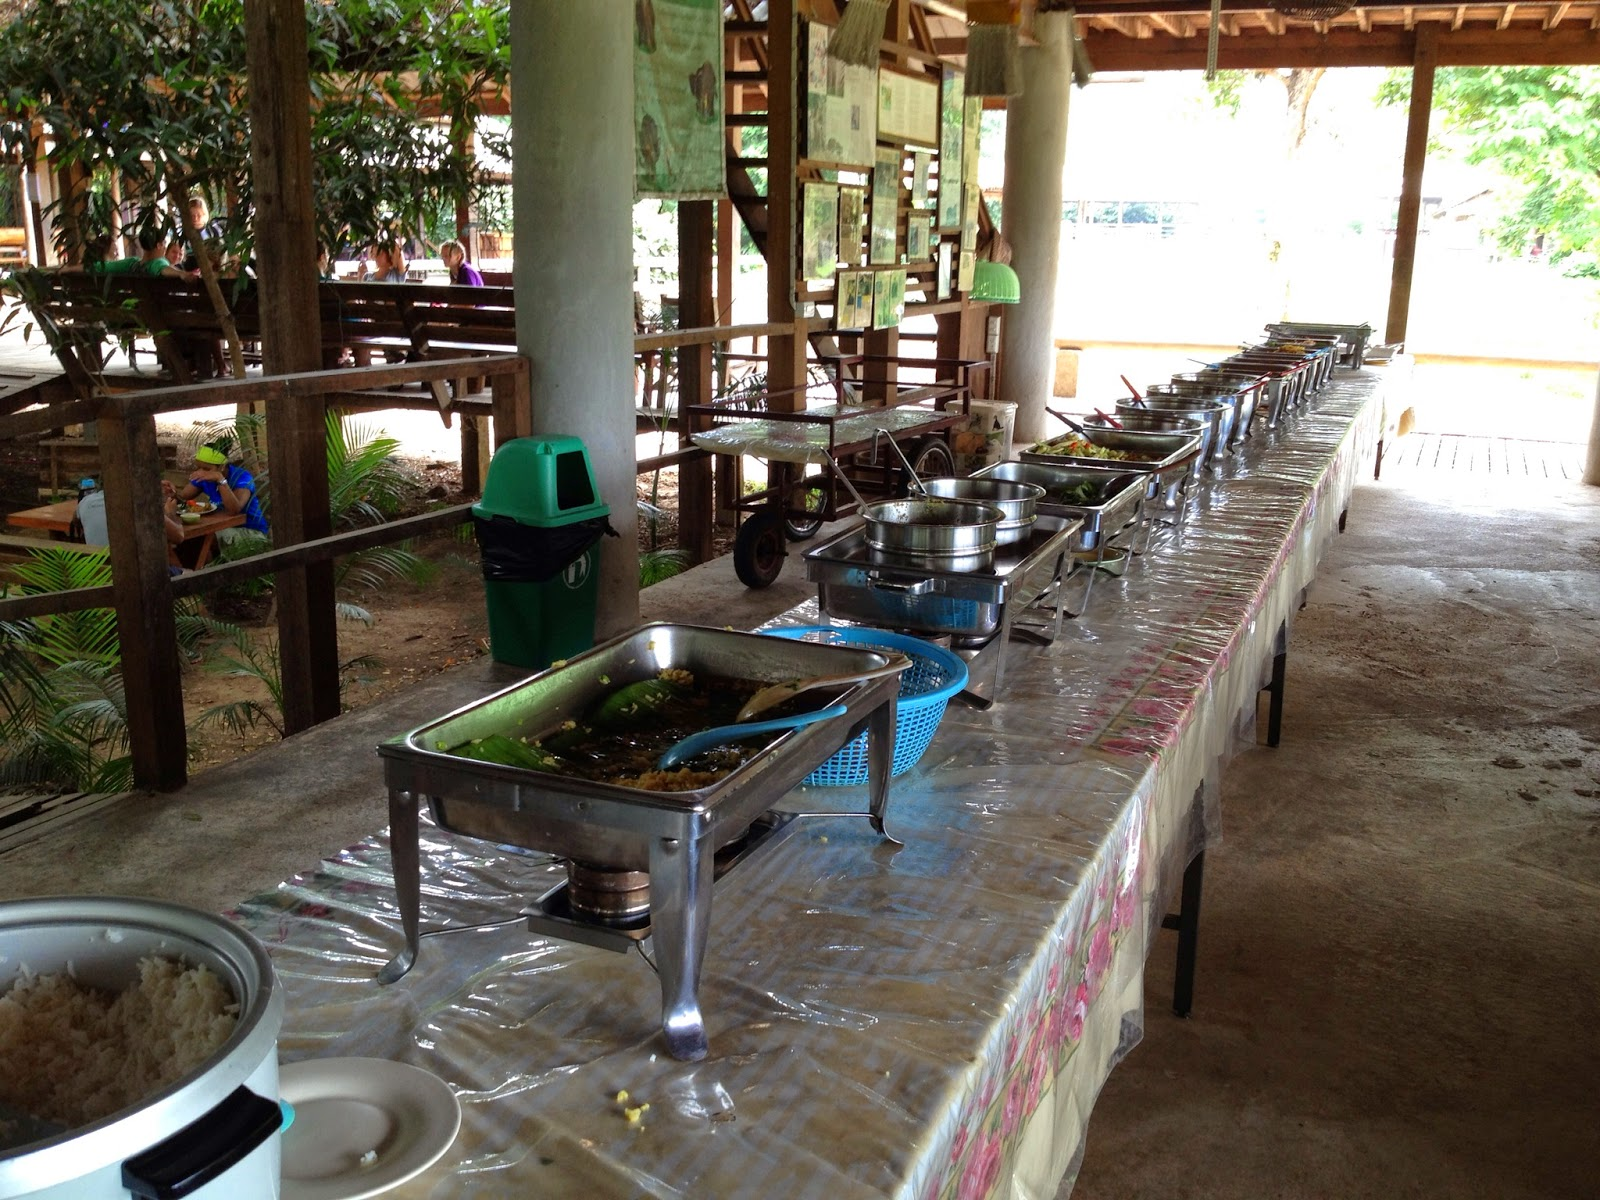 Chiang Mai - Lunch at Elephant Nature Park